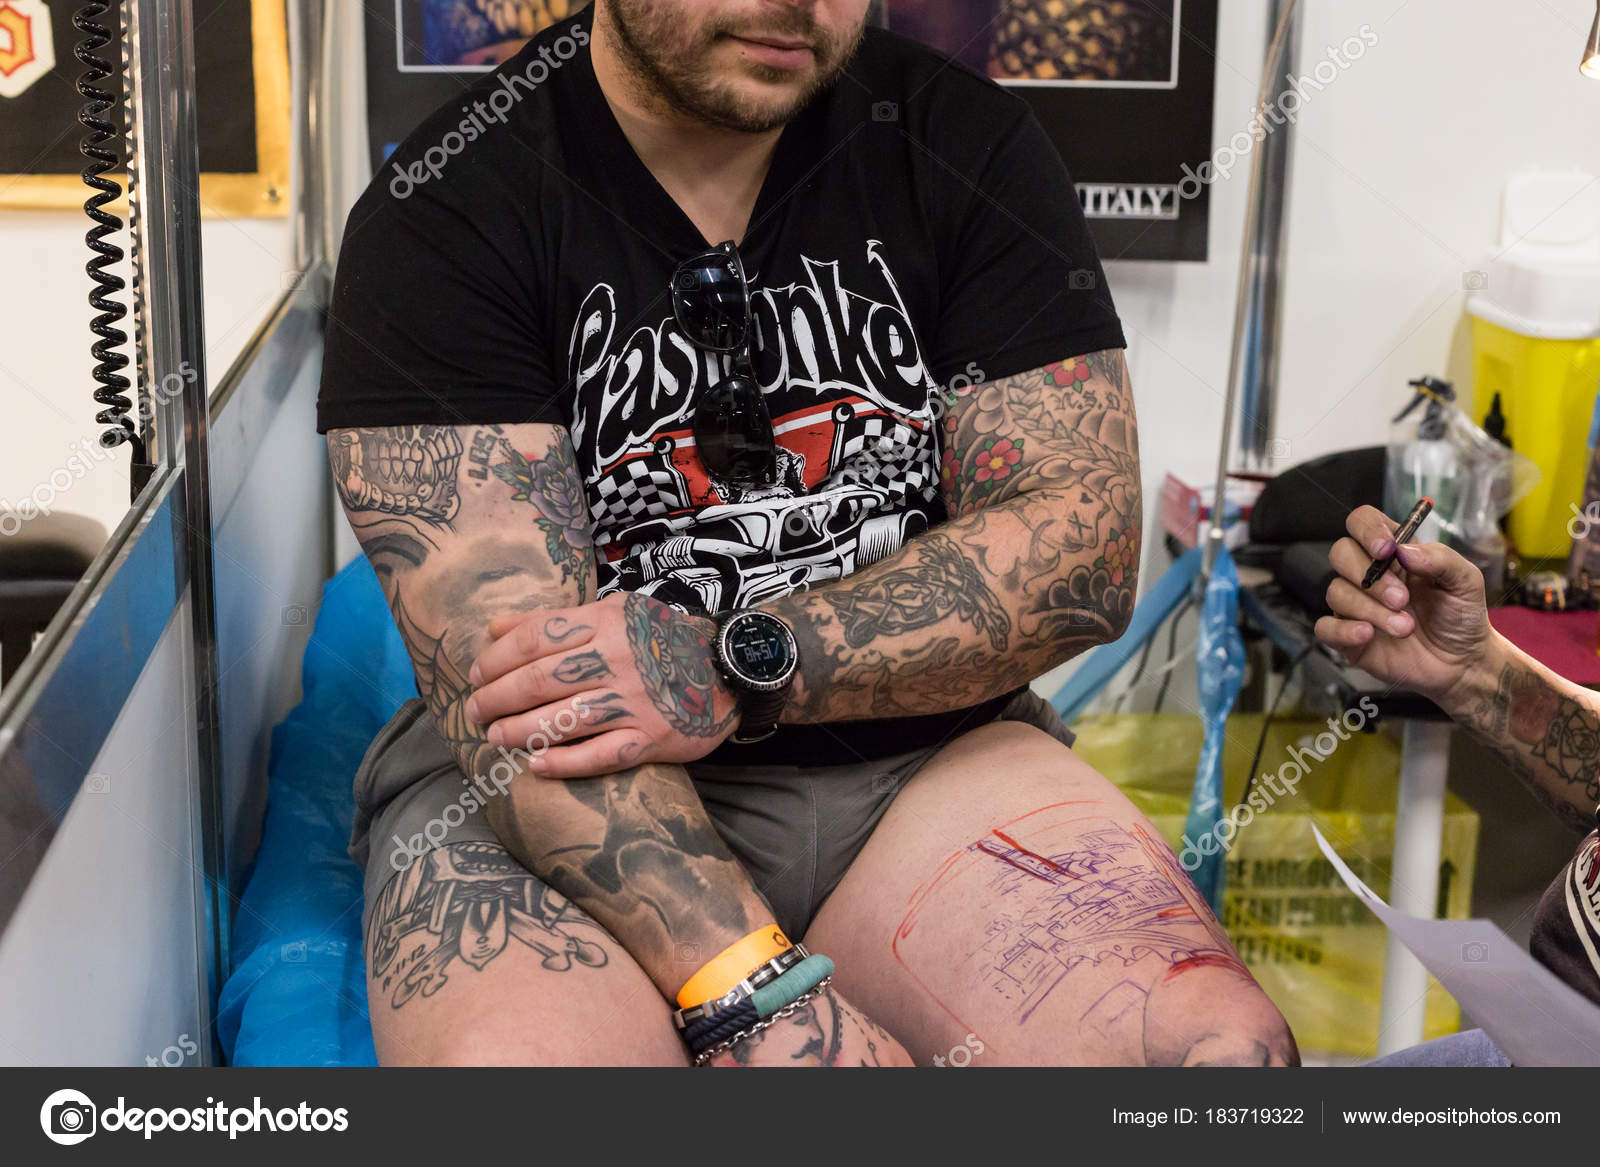 Tattoed Man At Milan Tattoo Convention 2018 Italy Stock Editorial Photo C Tinx 183719322